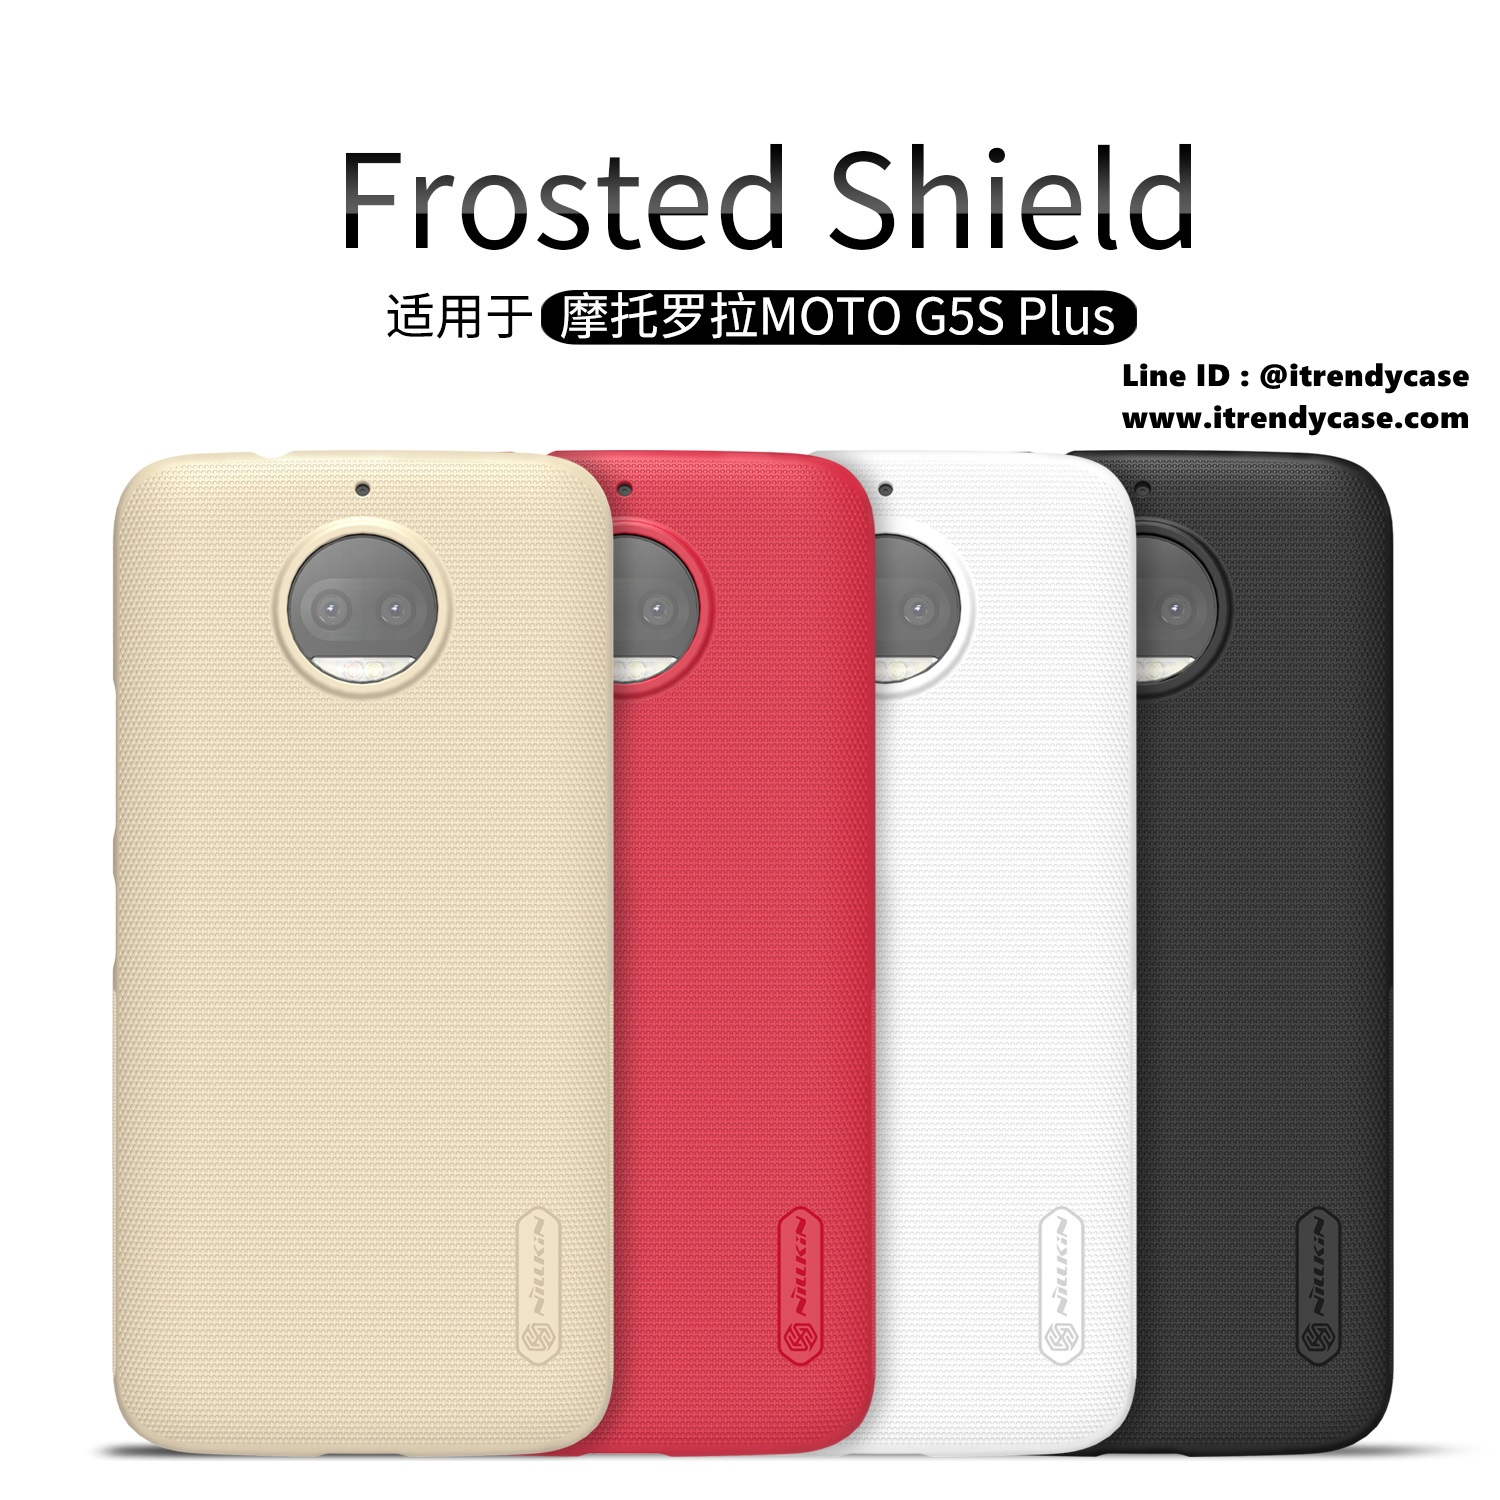 Moto G5s Plus - เคสหลัง Nillkin Super Frosted Shield แท้